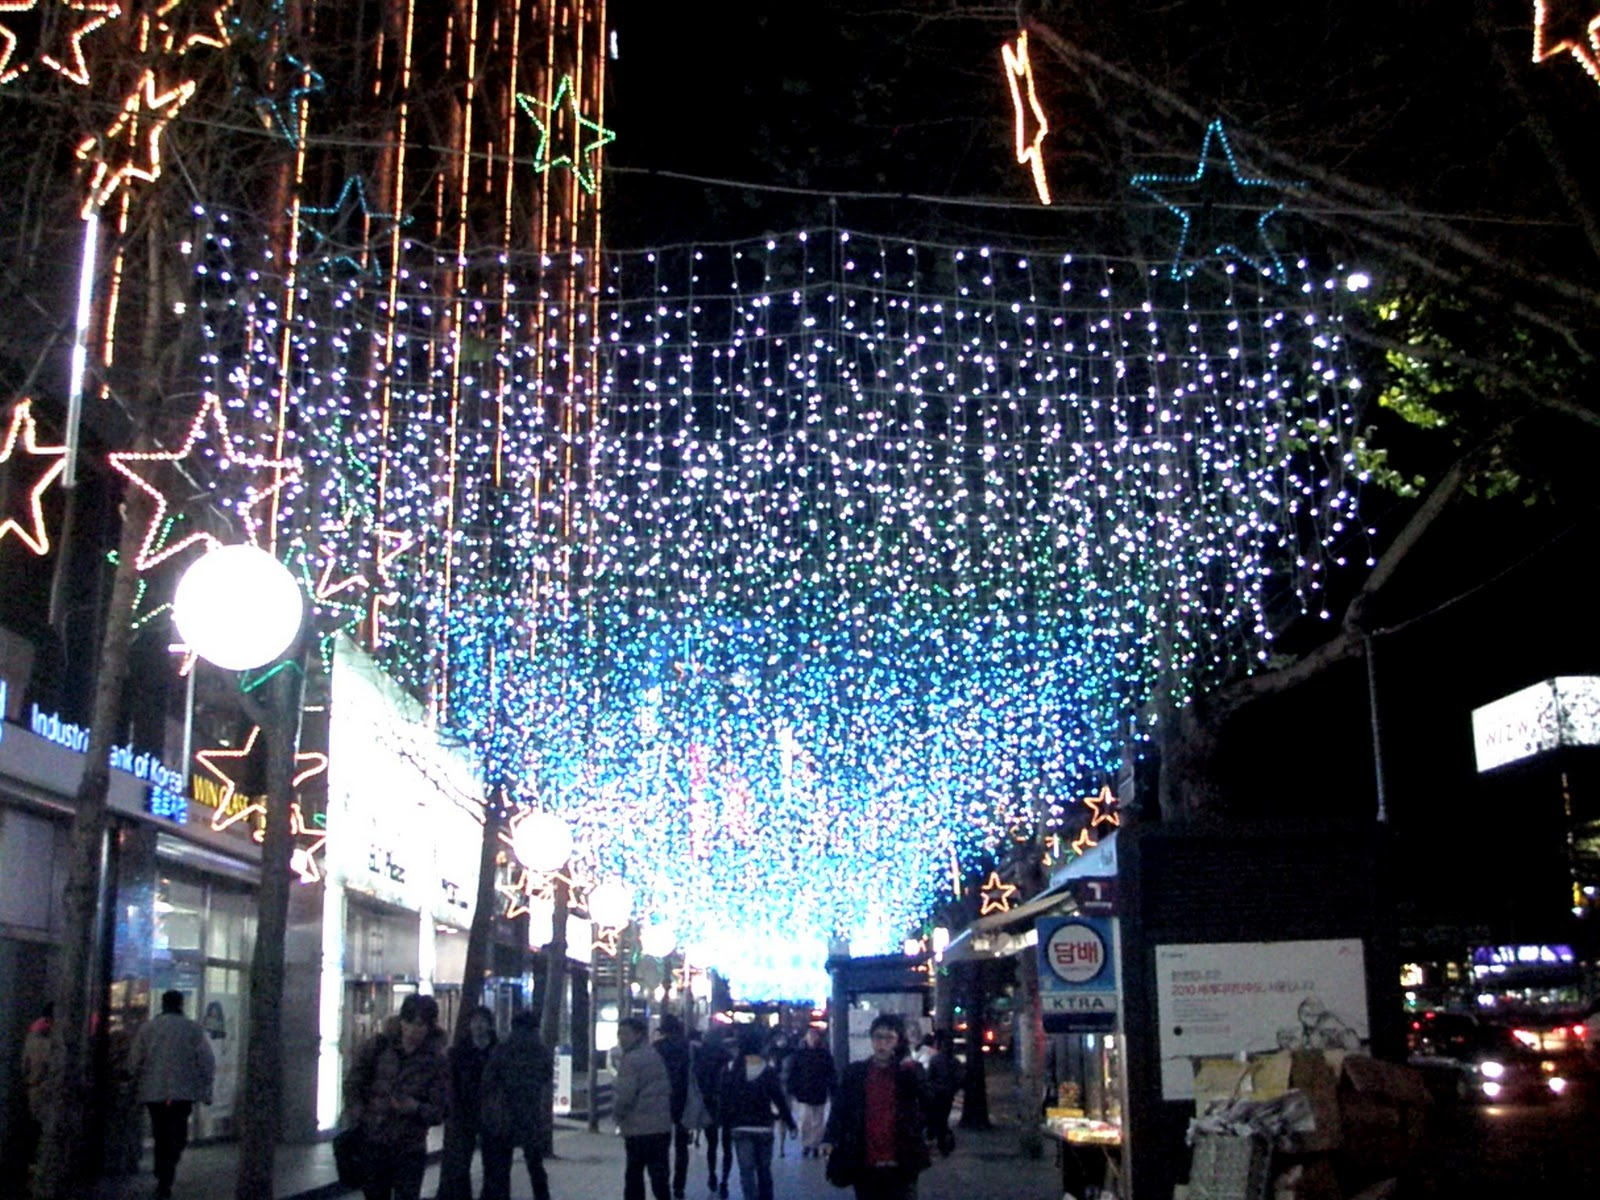 Surviving the Christmas season in Korea without family ...